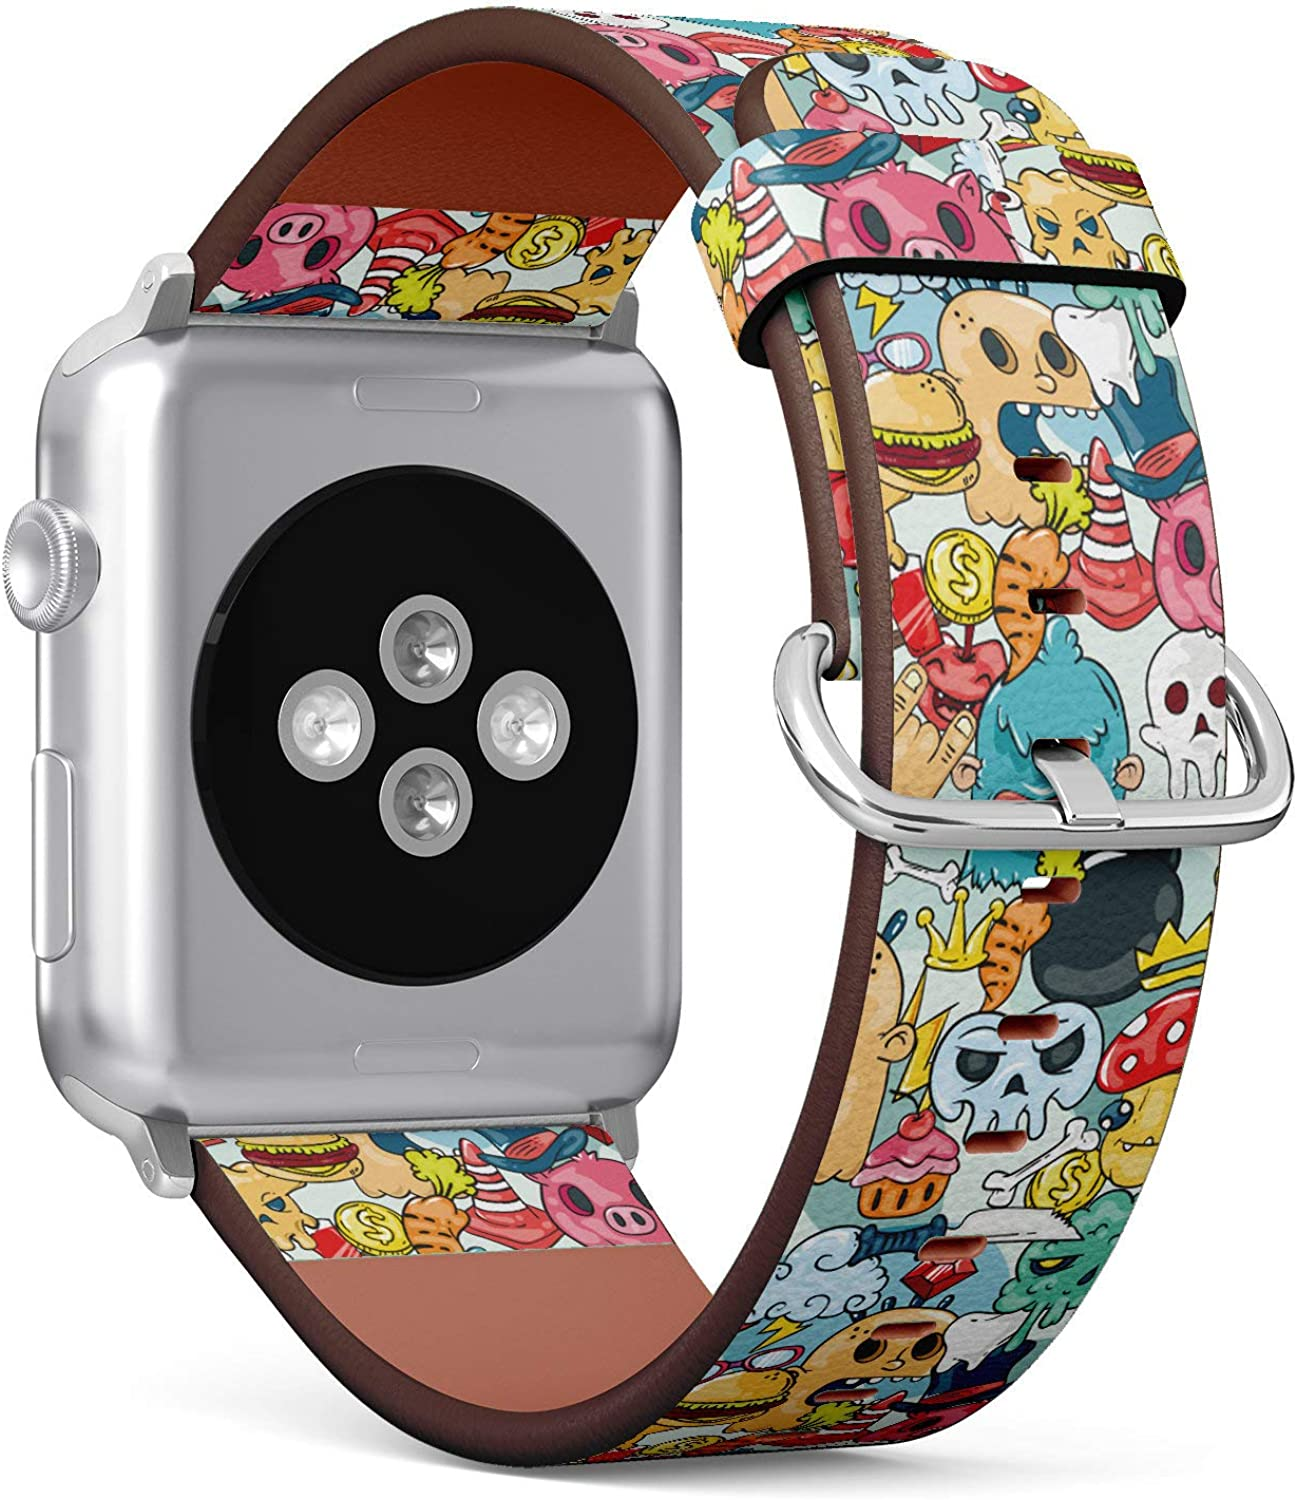 (Graffiti Texture with Bizarre Elements and Characters) Patterned Leather Wristband Strap Compatible with Apple Watch Series 4/3/2/1 gen,Replacement of iWatch 42mm / 44mm Bands